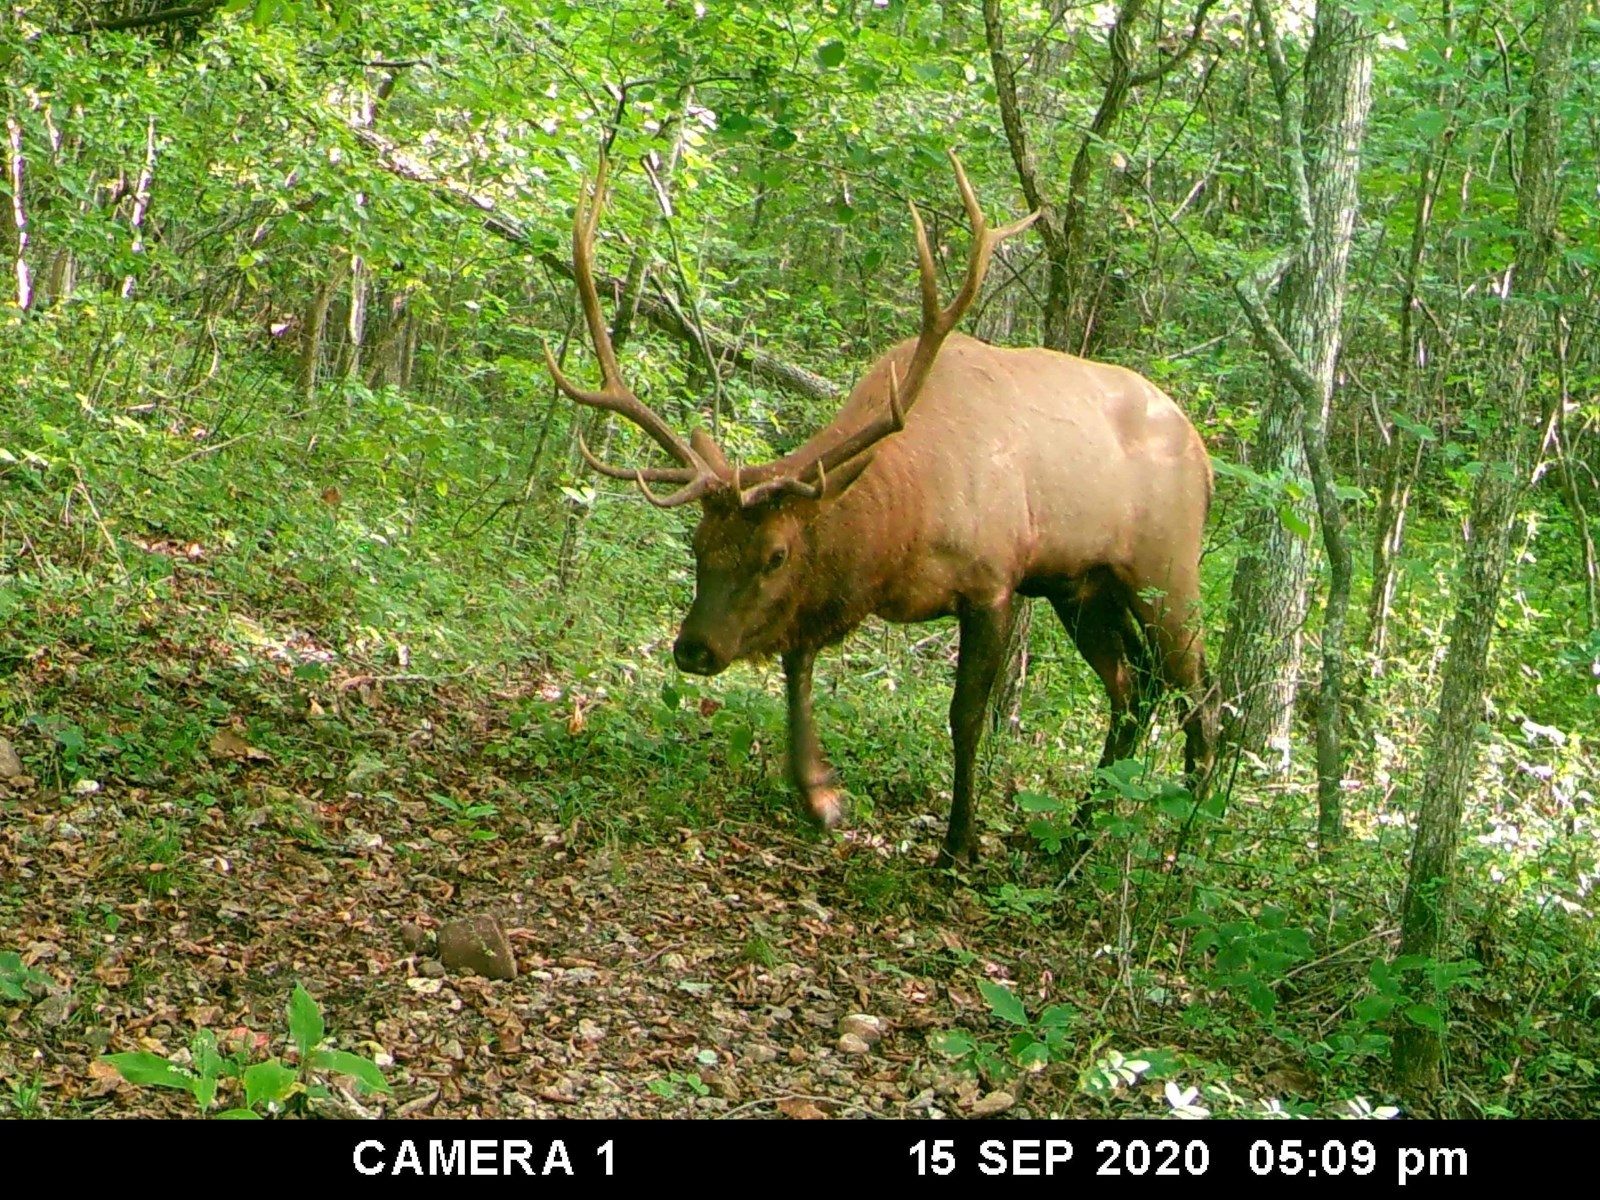 MISSOURI HUNTING LAND - 57.77 ACRES - TROPHY ELK,DEER,TURKEY